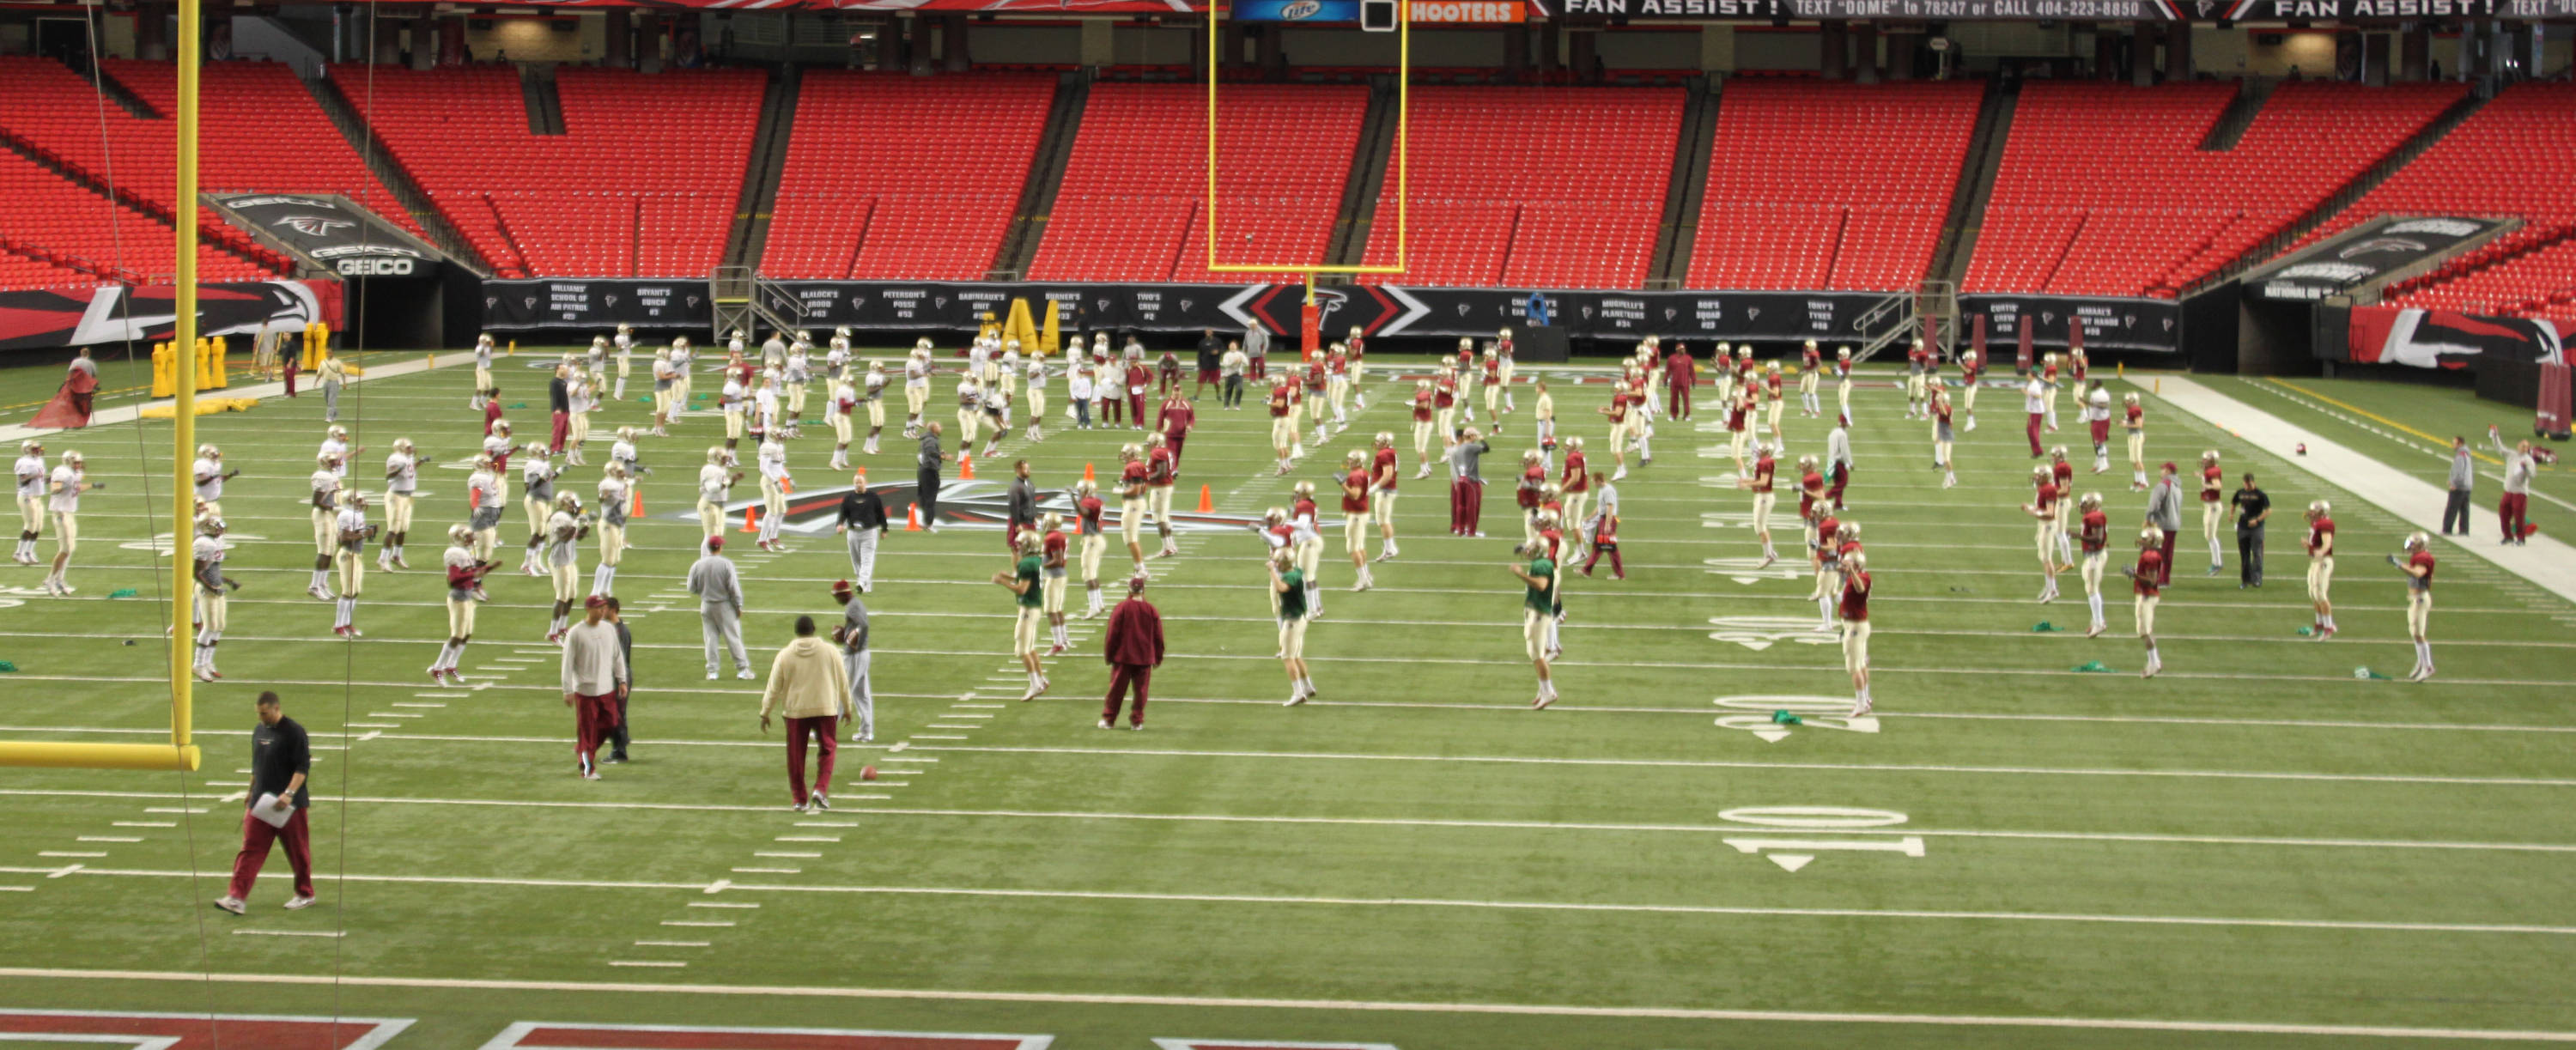 Chick-fil-A Bowl Practice One at the Georgia Dome.